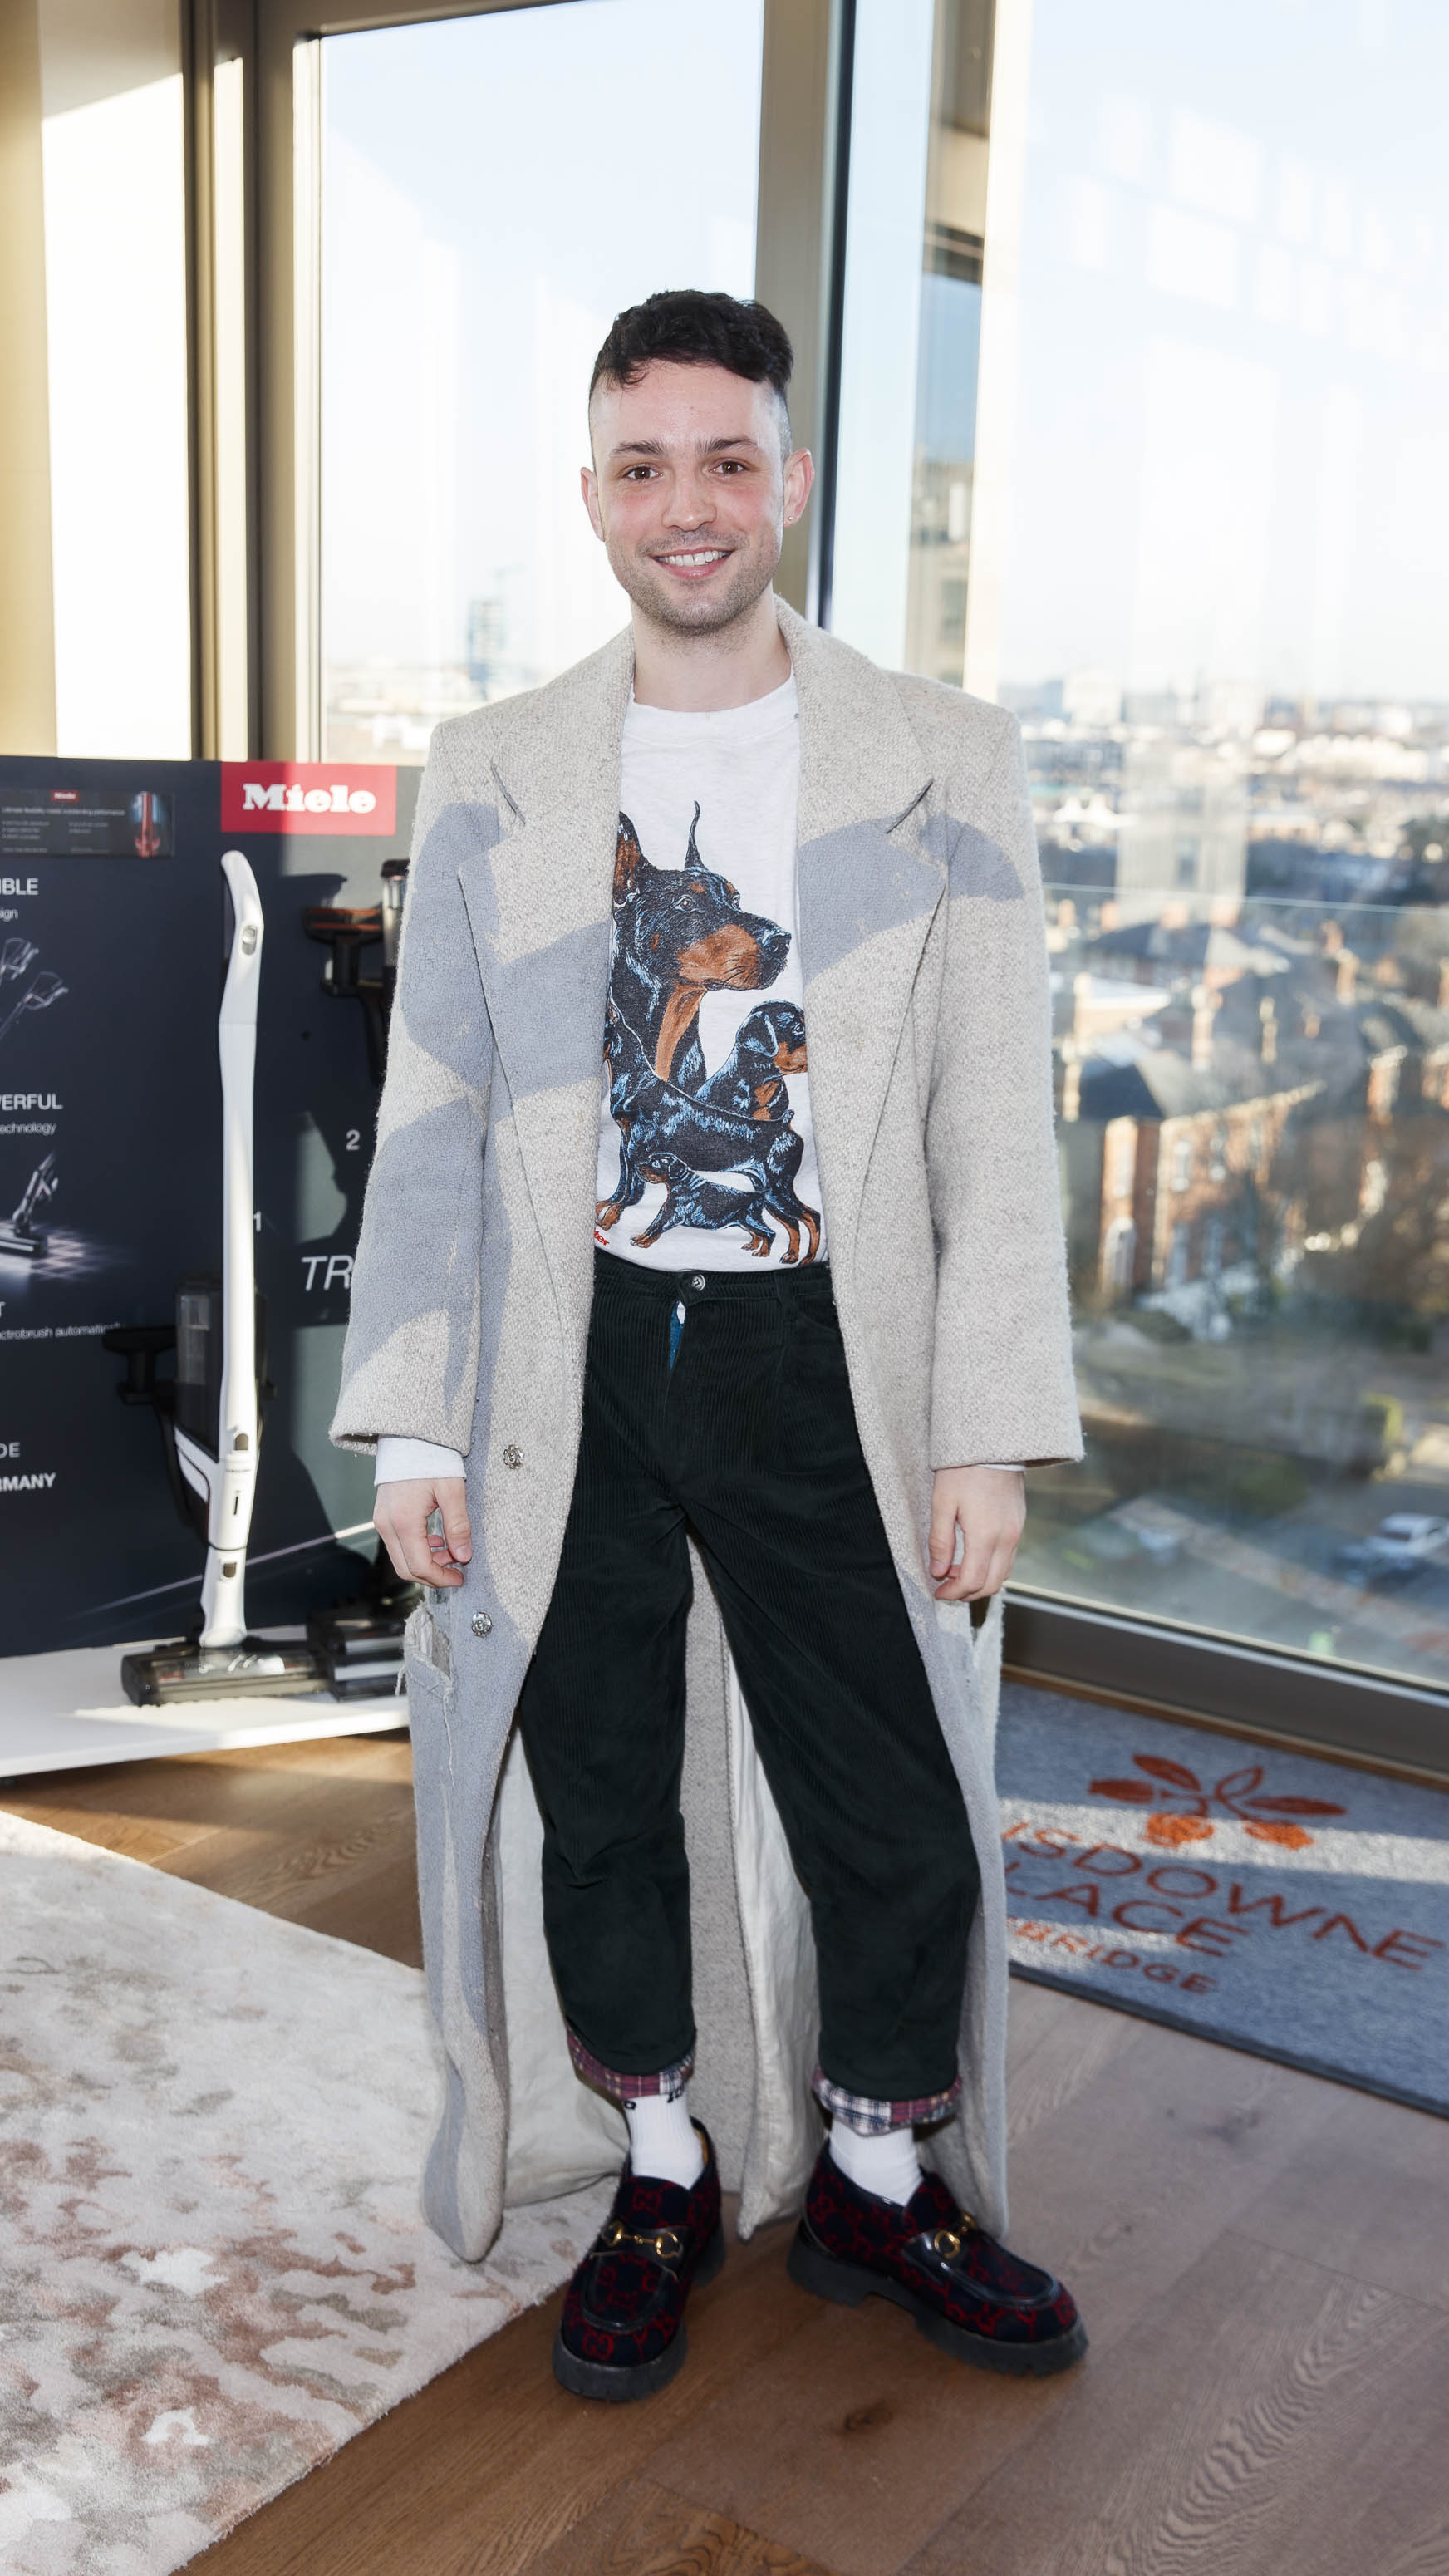 James Kananagh pictured at the launch of Miele Triflex. The world's leading manufacturer of cylinder vacuum cleaners, Miele, unveiled its first ever cordless handstick model at the stunning Landsdowne Place penthouse. Hosted by Miele managing director, Pat McGrath and in conversation with Dermot Bannon and Ciara Elliott, guests experienced the ultimate cordless vacuum cleaner, which is available in all major retailers from €499. Picture Andres Poveda